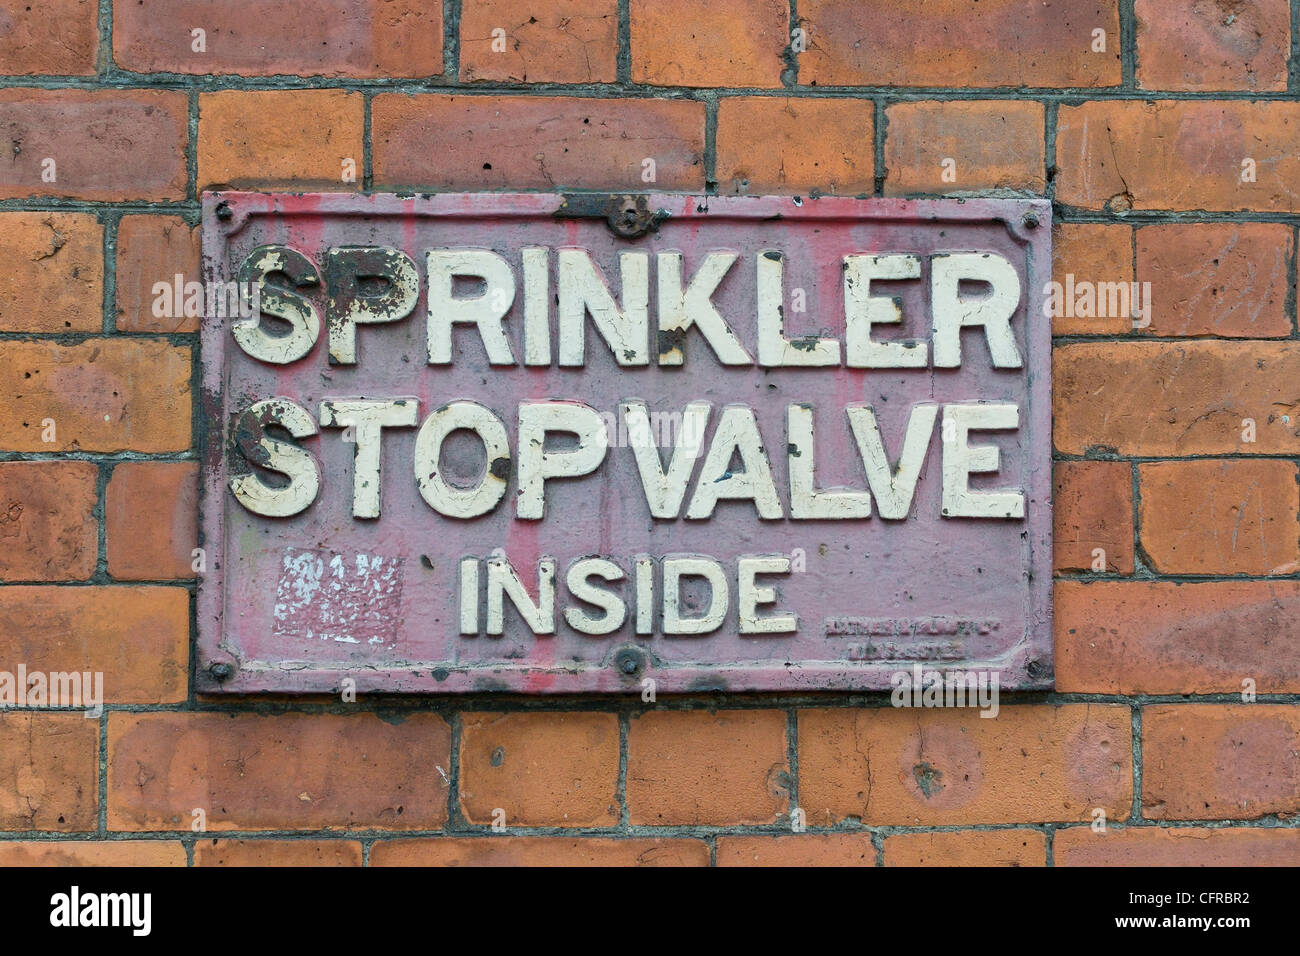 An old 'sprinkler stop valve' sign on the side of a brick building in Manchester. - Stock Image